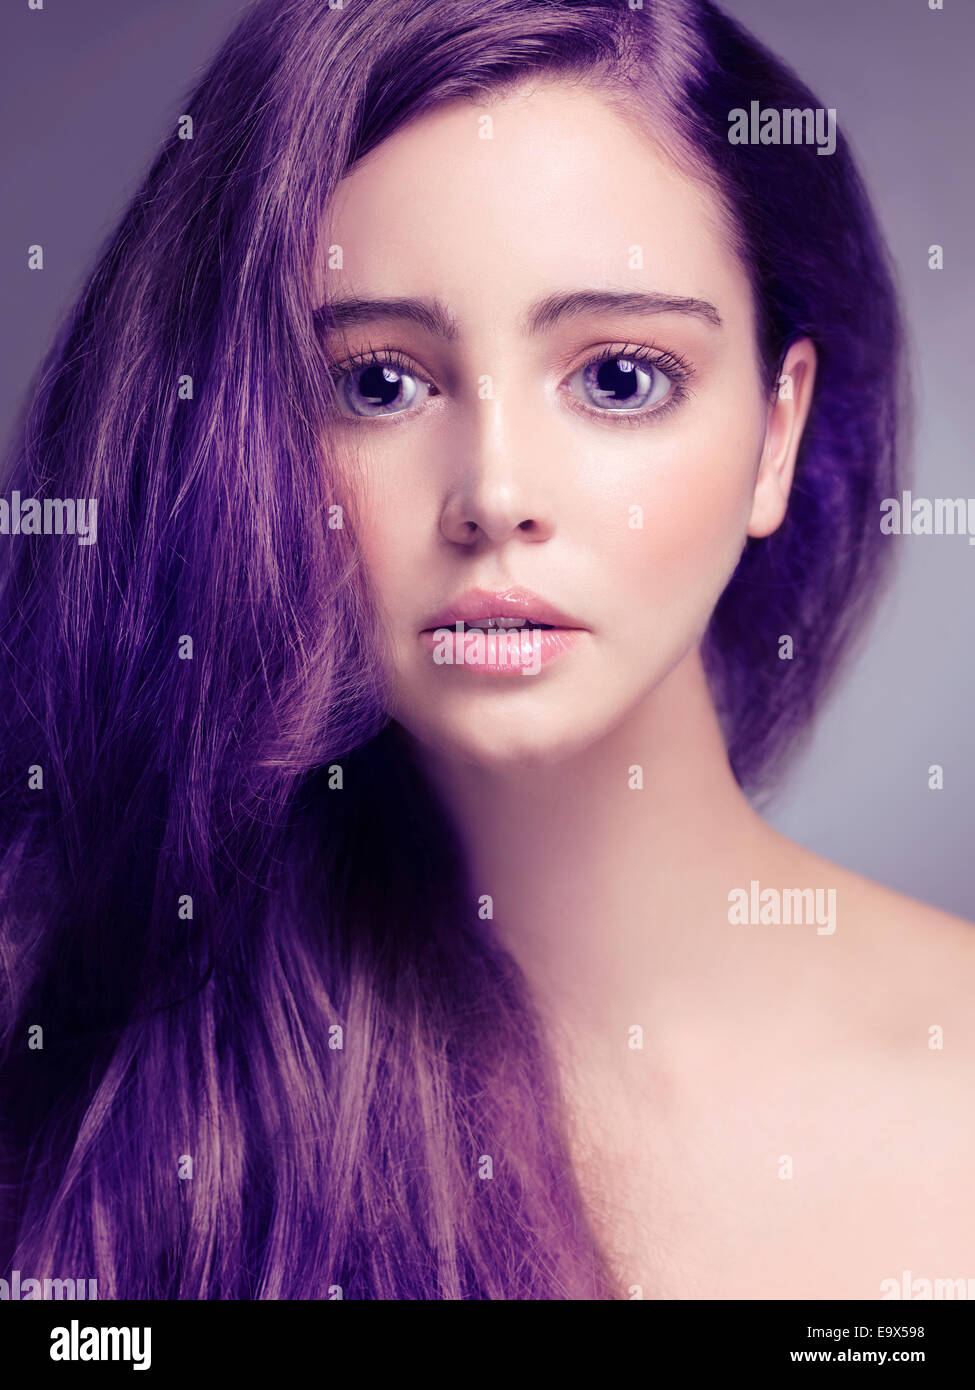 Cute young woman face with big sad eyes and long purple hair Stock